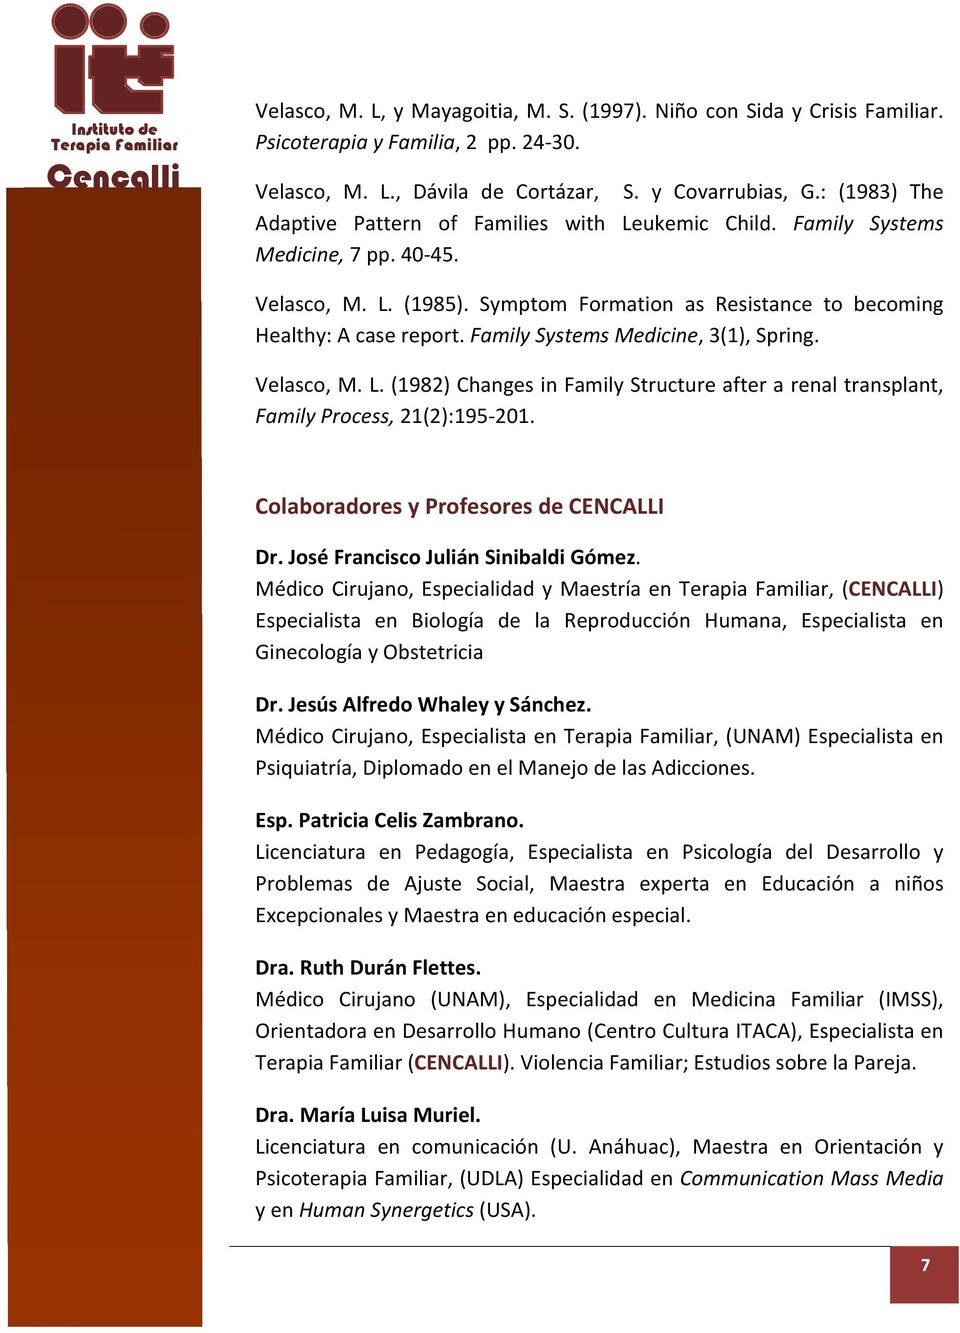 Family Systems Medicine, 3(1), Spring. Velasco, M. L. (1982) Changes in Family Structure after a renal transplant, Family Process, 21(2):195-201. Colaboradores y Profesores de CENCALLI Dr.